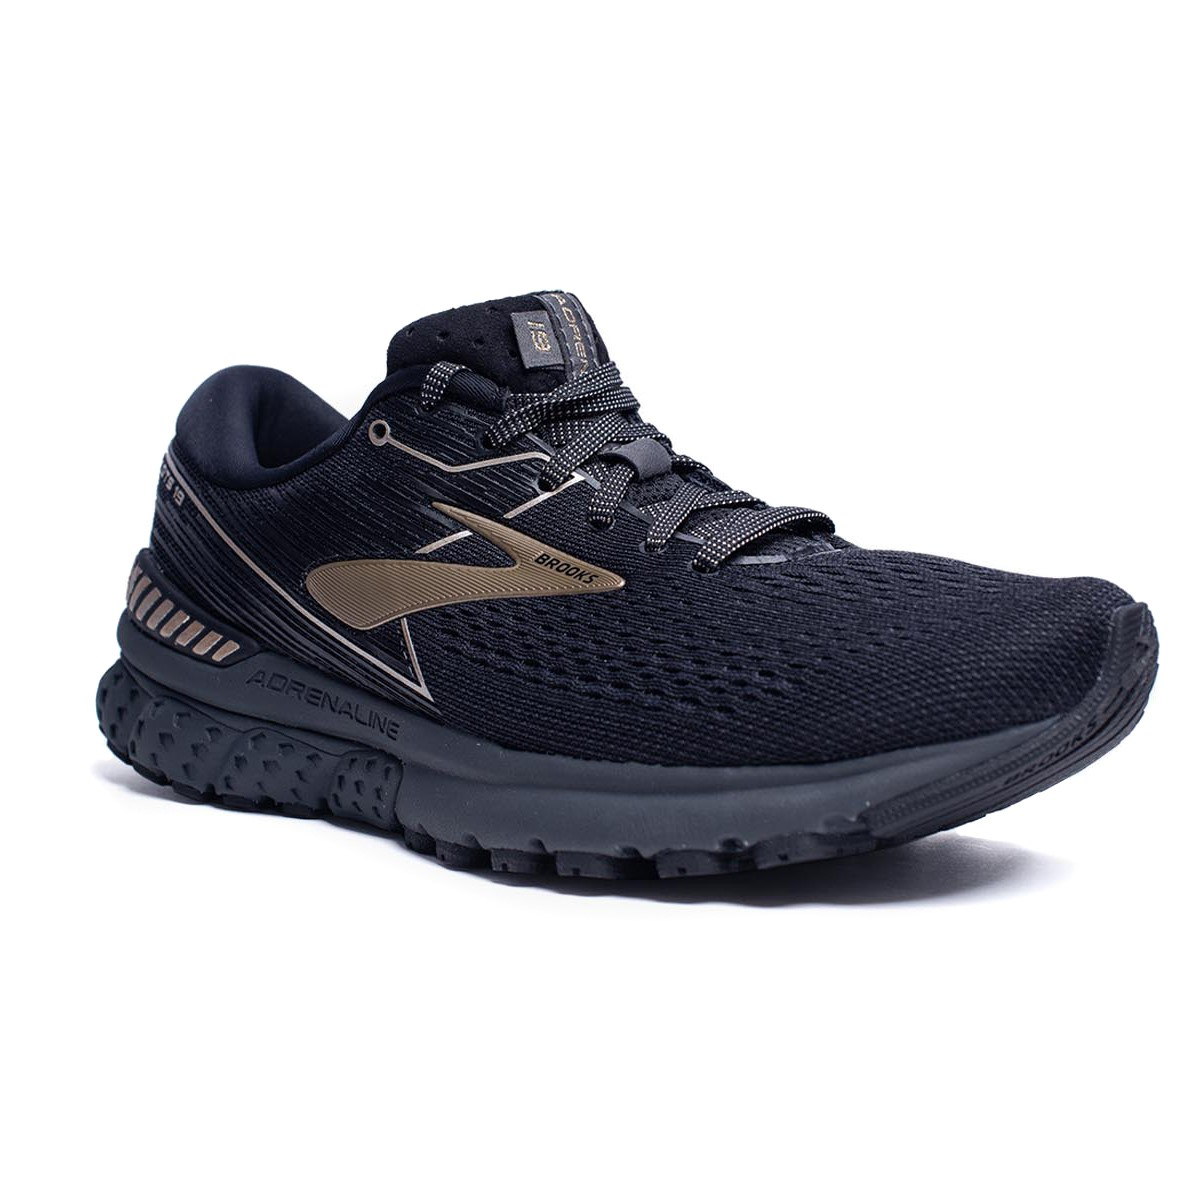 f04373b2b3d Brooks Adrenaline GTS 19 Metallic Pack - Womens Running Shoes -  Black Champagne